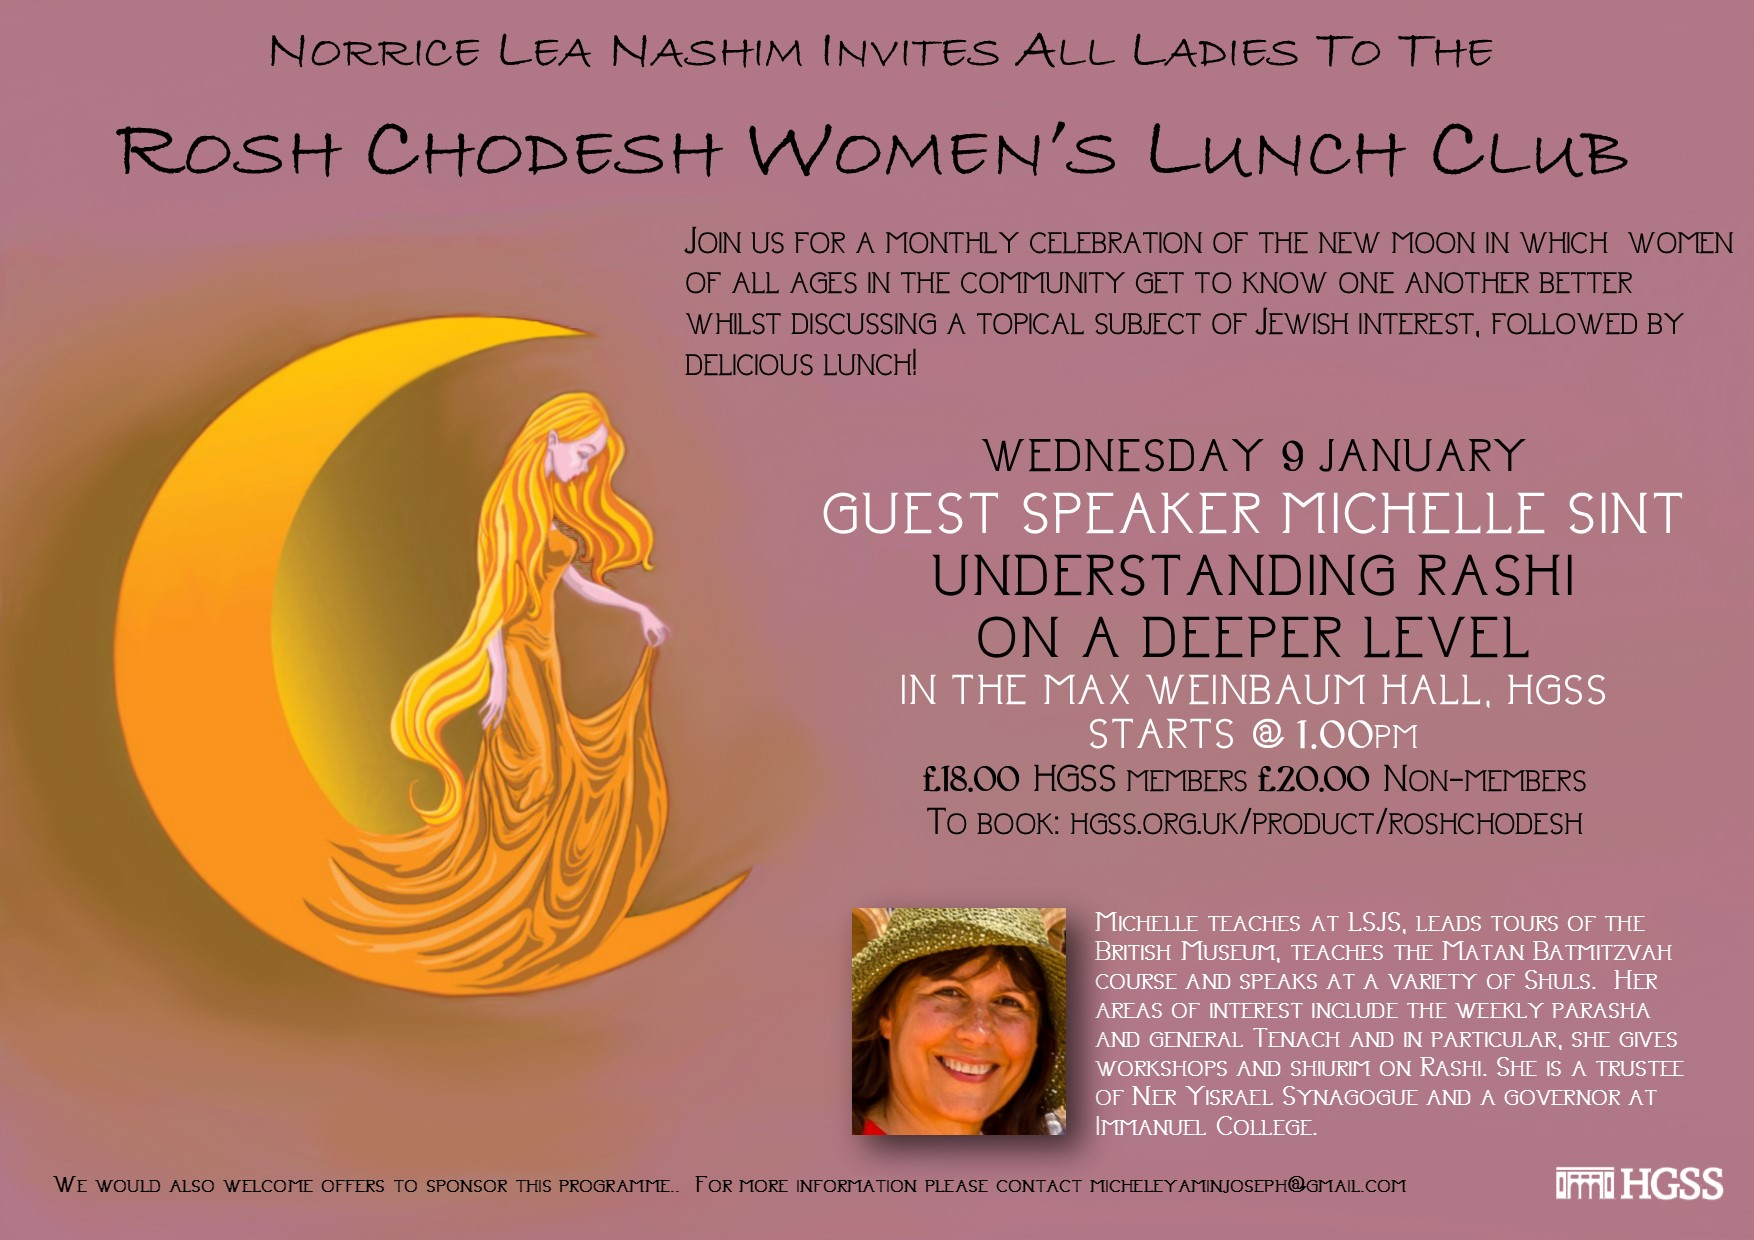 Rosh Chodesh Women's Lunch Club @ Max Weinbaum Hall